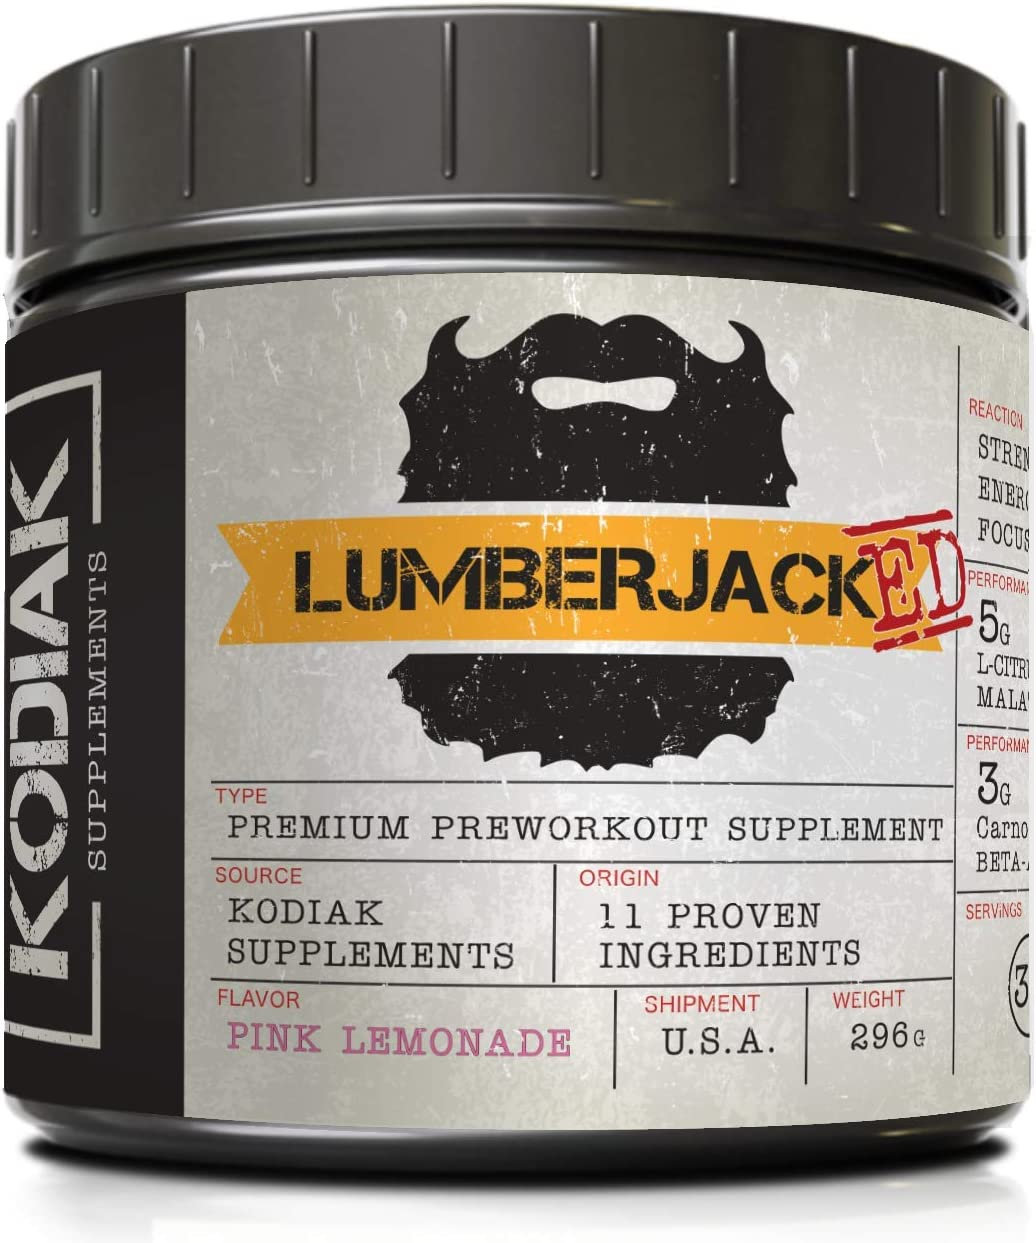 LUMBERJACKED Pre-Workout Supplement with CarnoSyn – 30 Servings – Better Pumps, Strength, Energy, and Focus – No Crash Pink Lemonade